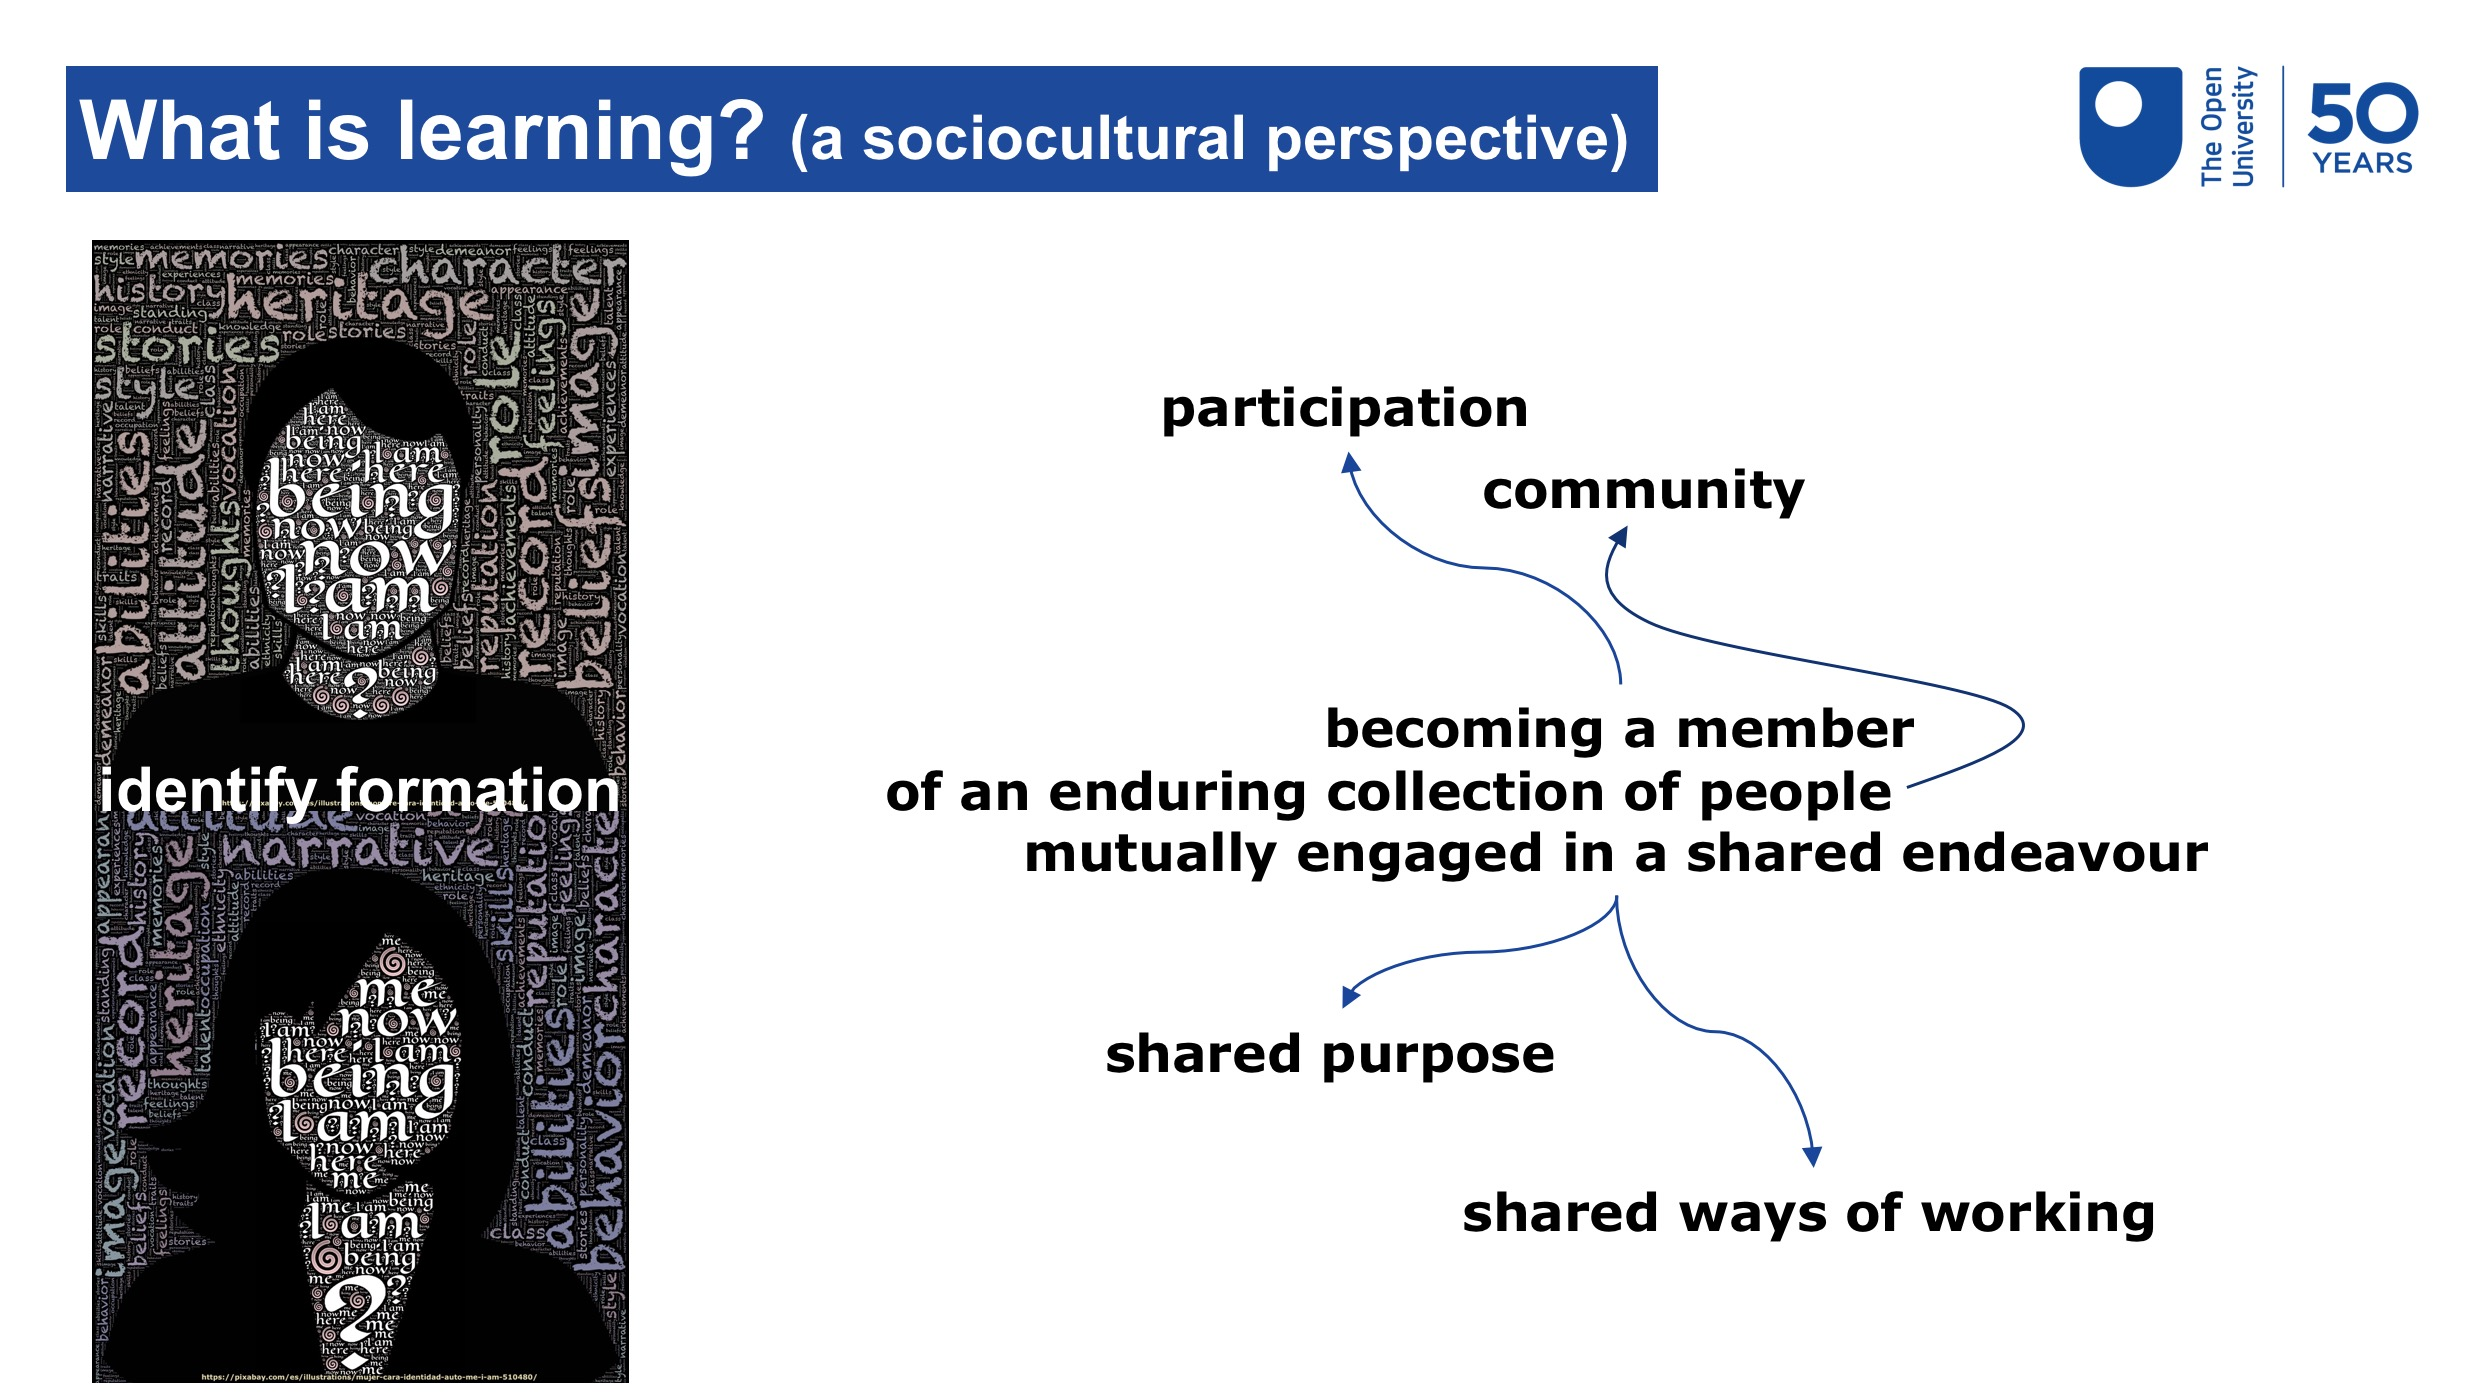 Image summarising the text above about what learning from a sociocultural perspective involves